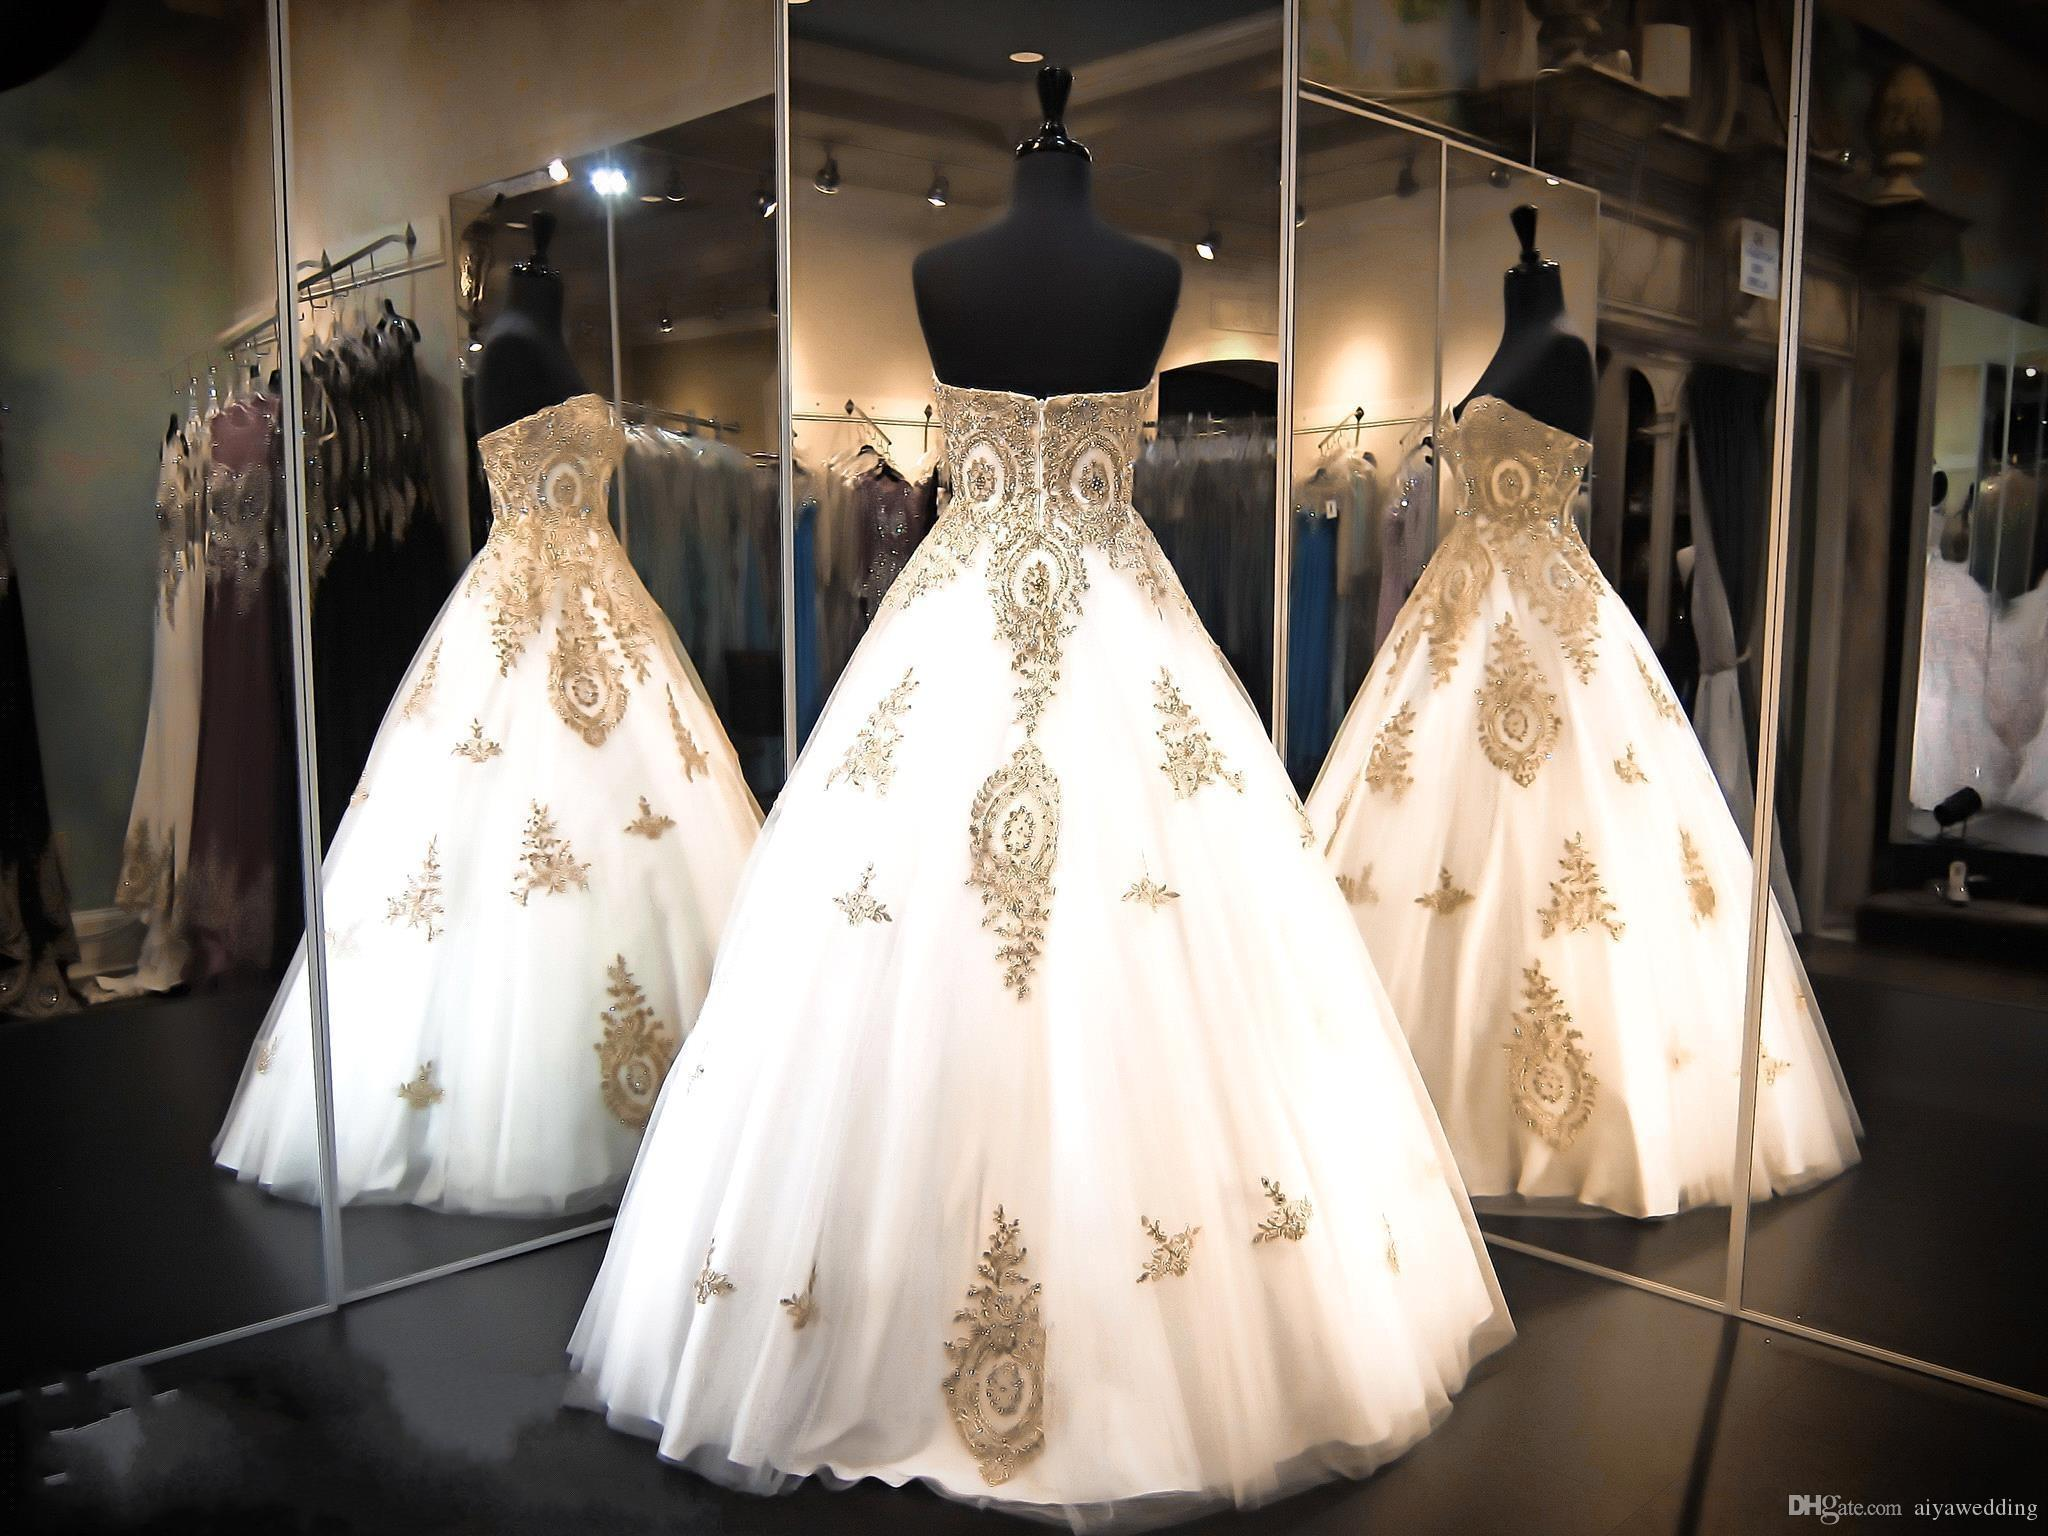 2019 Sweetheart Quinceanera Dresses Ball Gowns Tiers Tulle with Gold Appliques 15 Sweet Prom Party Gowns Custom Pageant Gowns